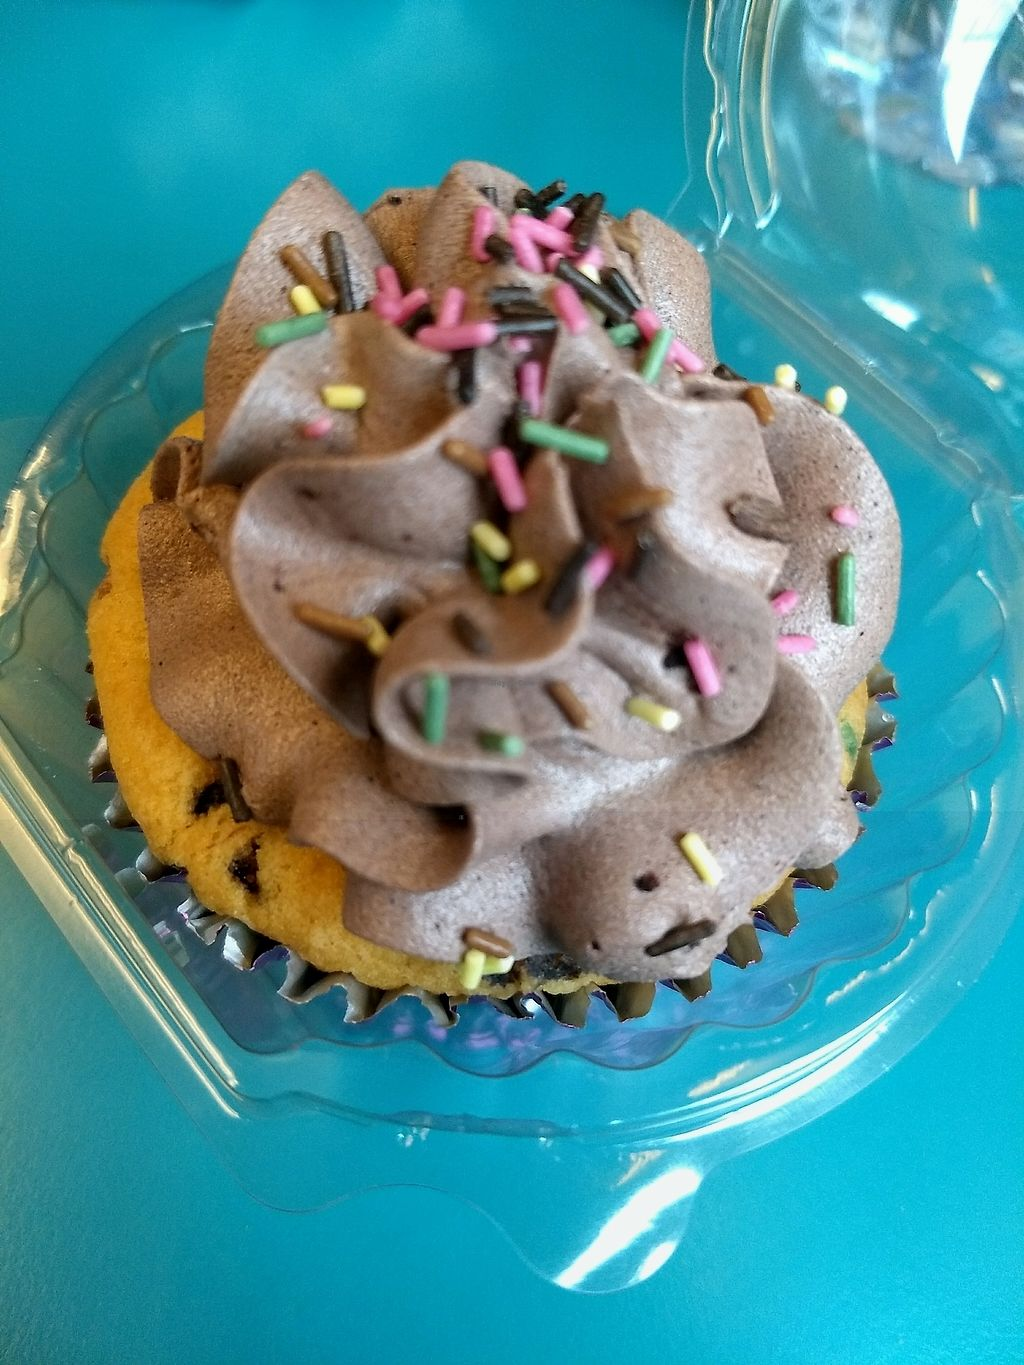 """Photo of Kathy's Deli & Cupcakery  by <a href=""""/members/profile/Cam"""">Cam</a> <br/>sugar high <br/> November 18, 2017  - <a href='/contact/abuse/image/105426/326754'>Report</a>"""